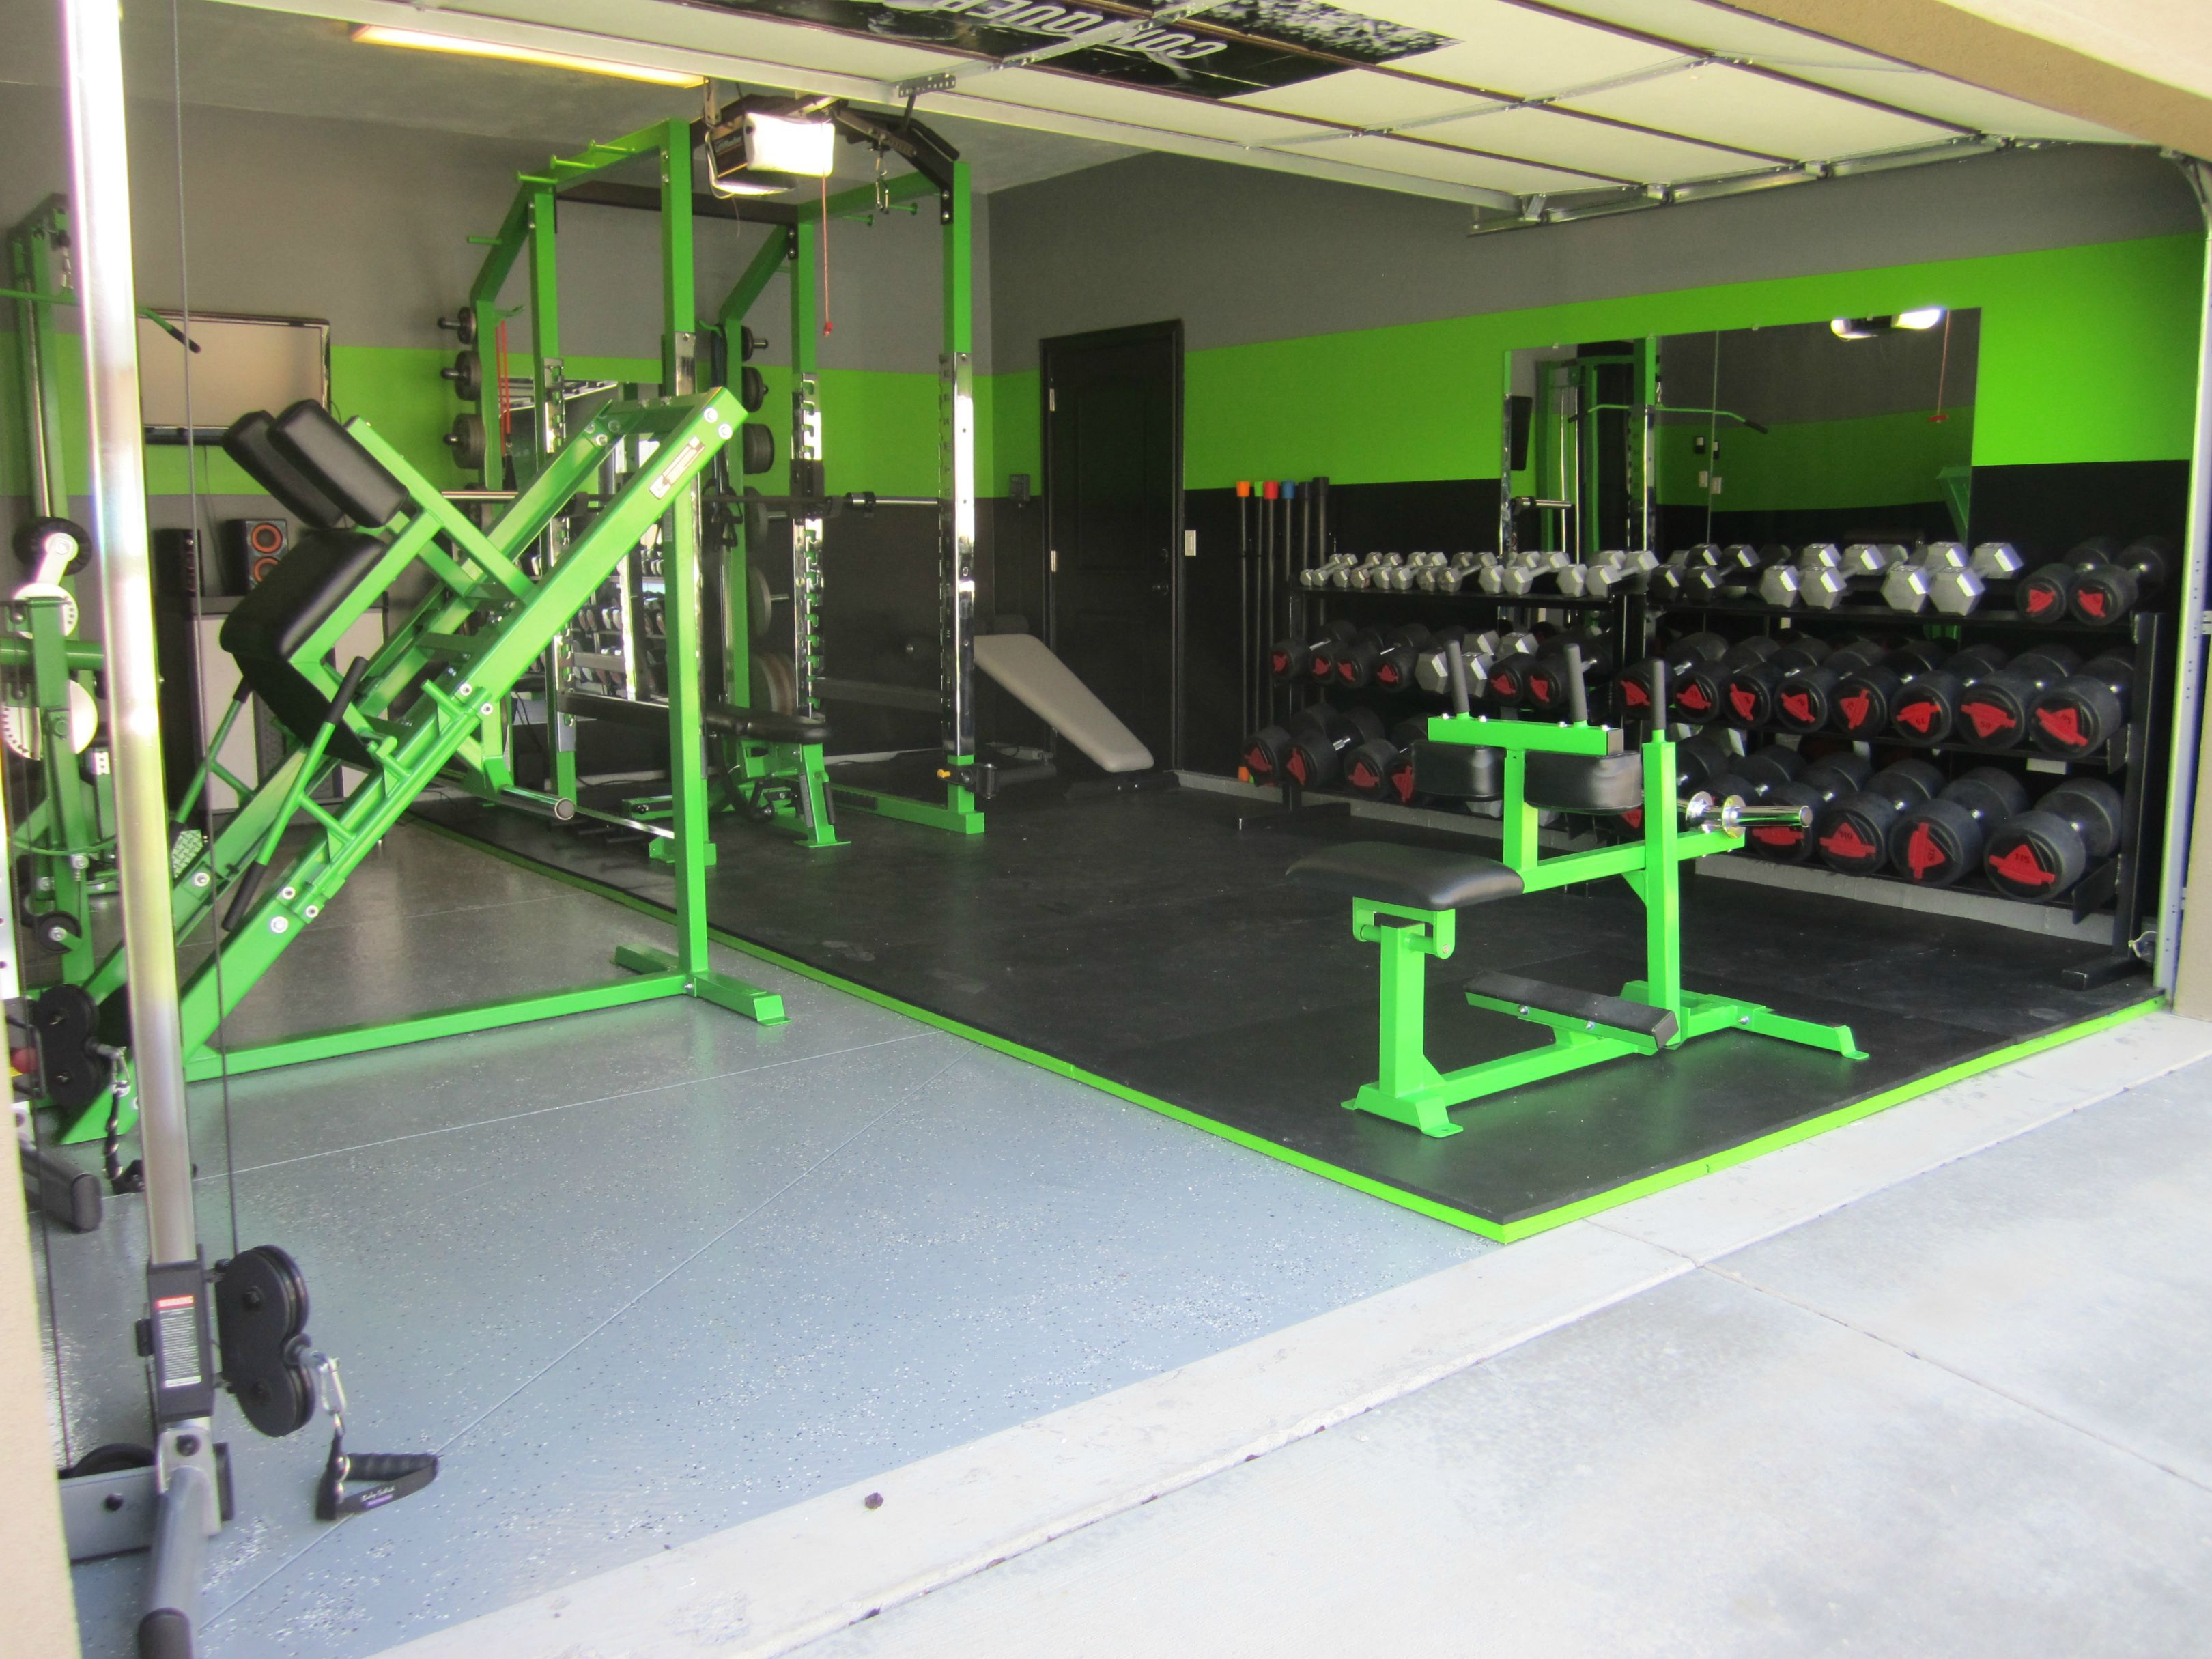 Diy Garage Gym Equipment Awesome Home Garage Gym Just For The Health Of It